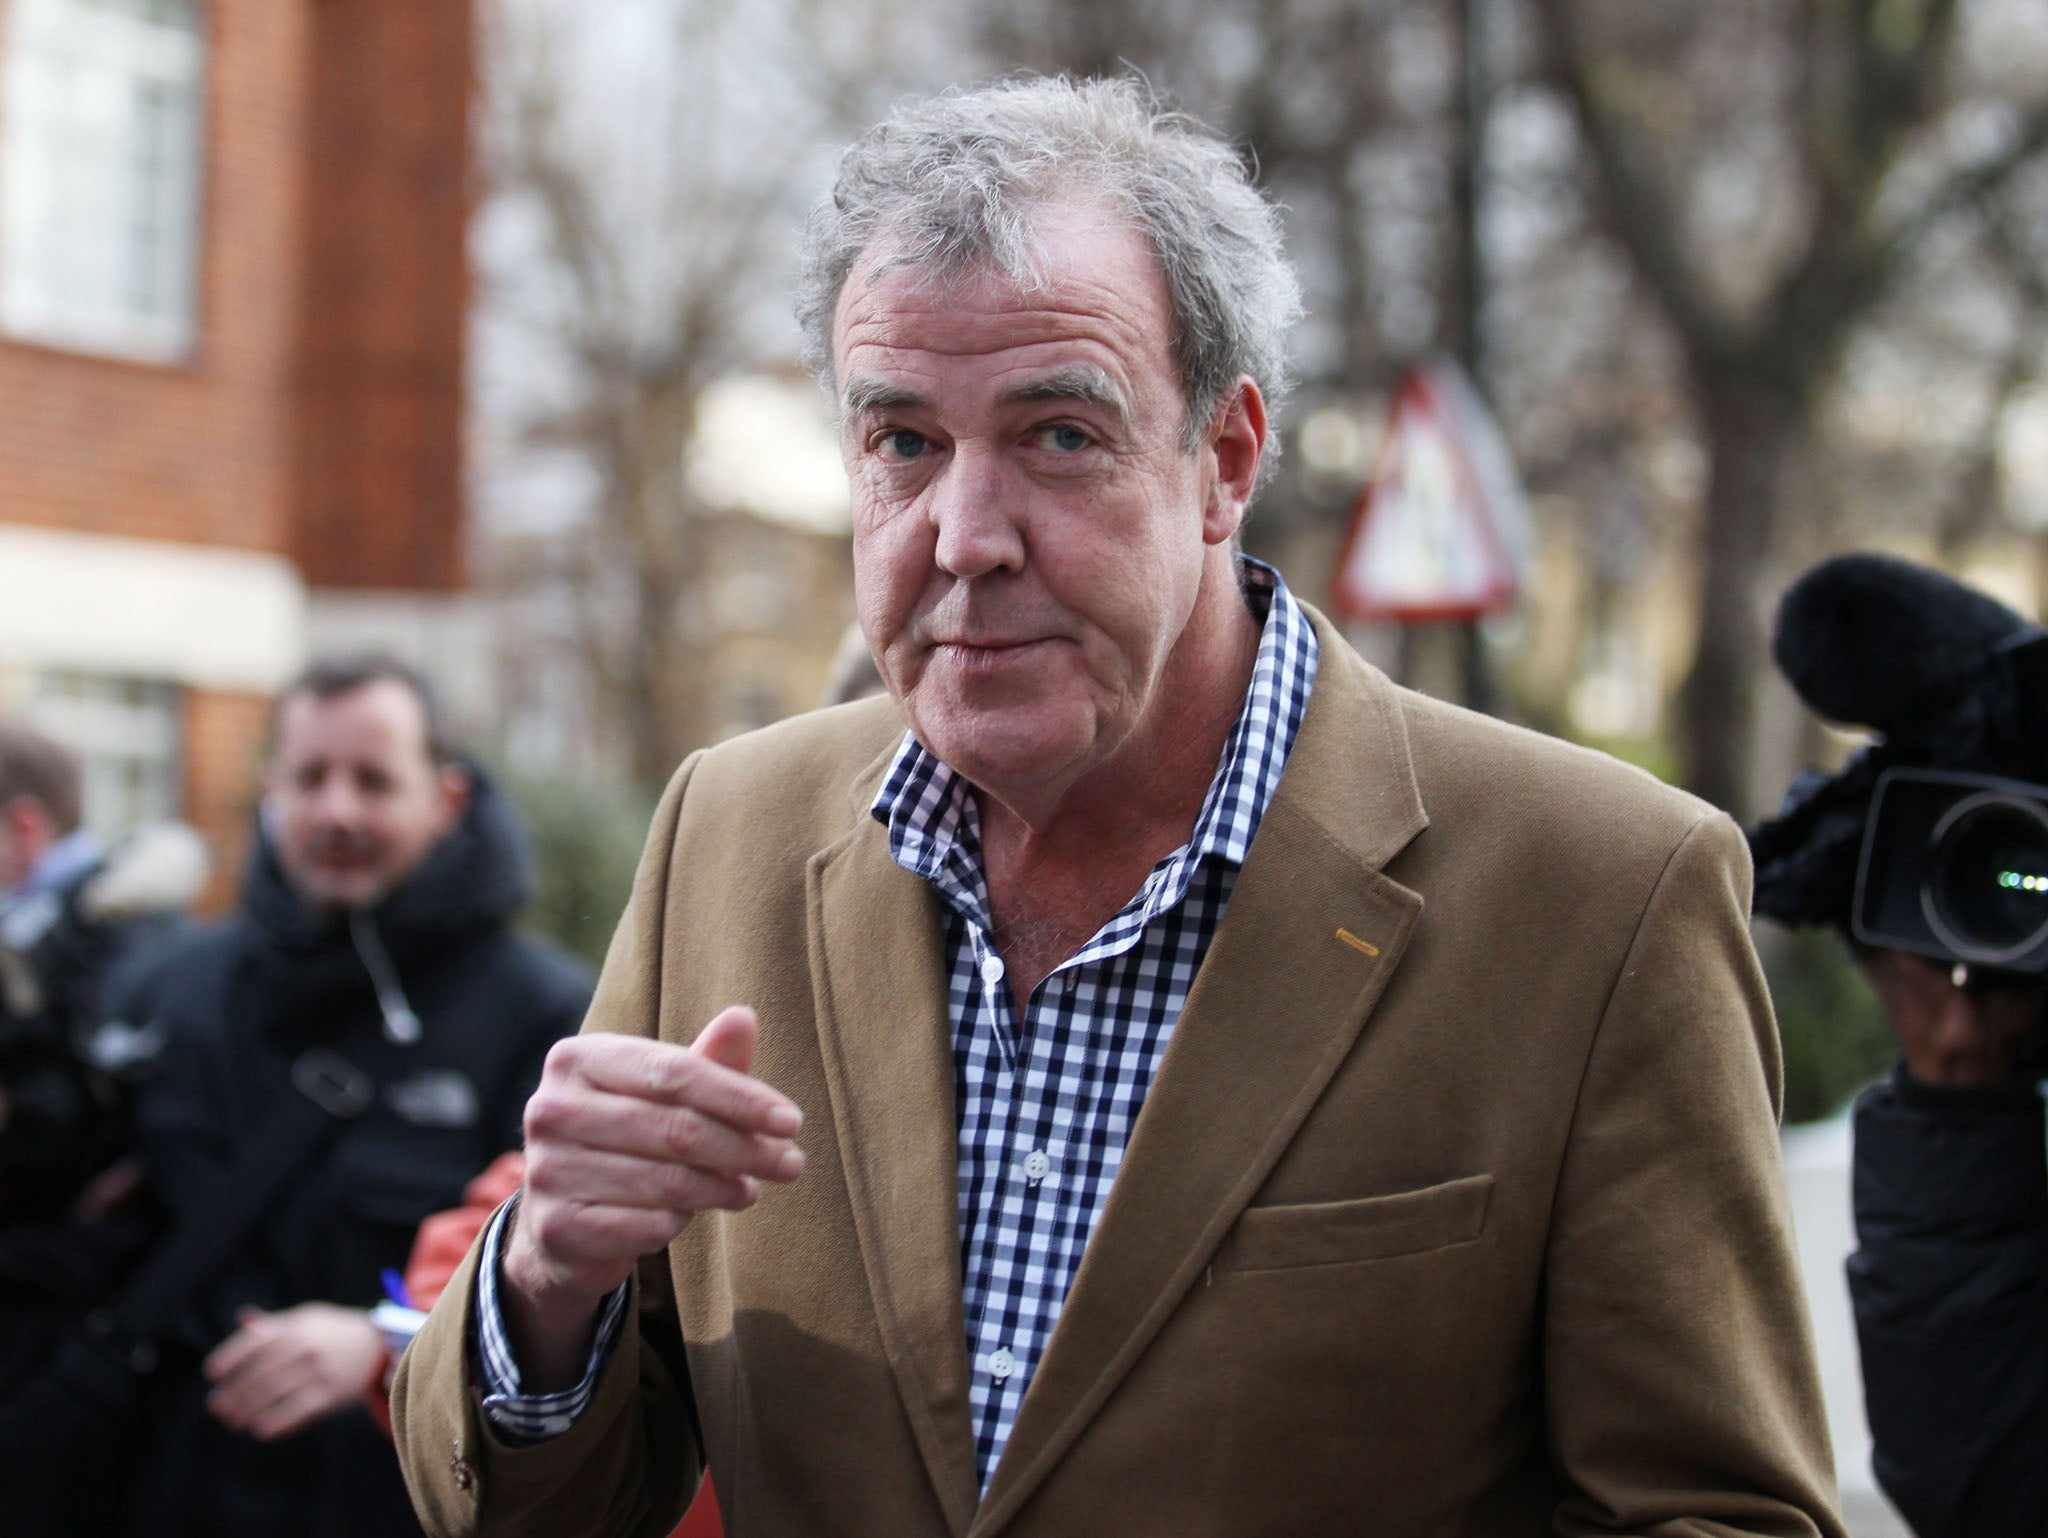 jeremy clarkson 39 s 39 fracas 39 immortalised on plaque at hotel where it happened the independent. Black Bedroom Furniture Sets. Home Design Ideas